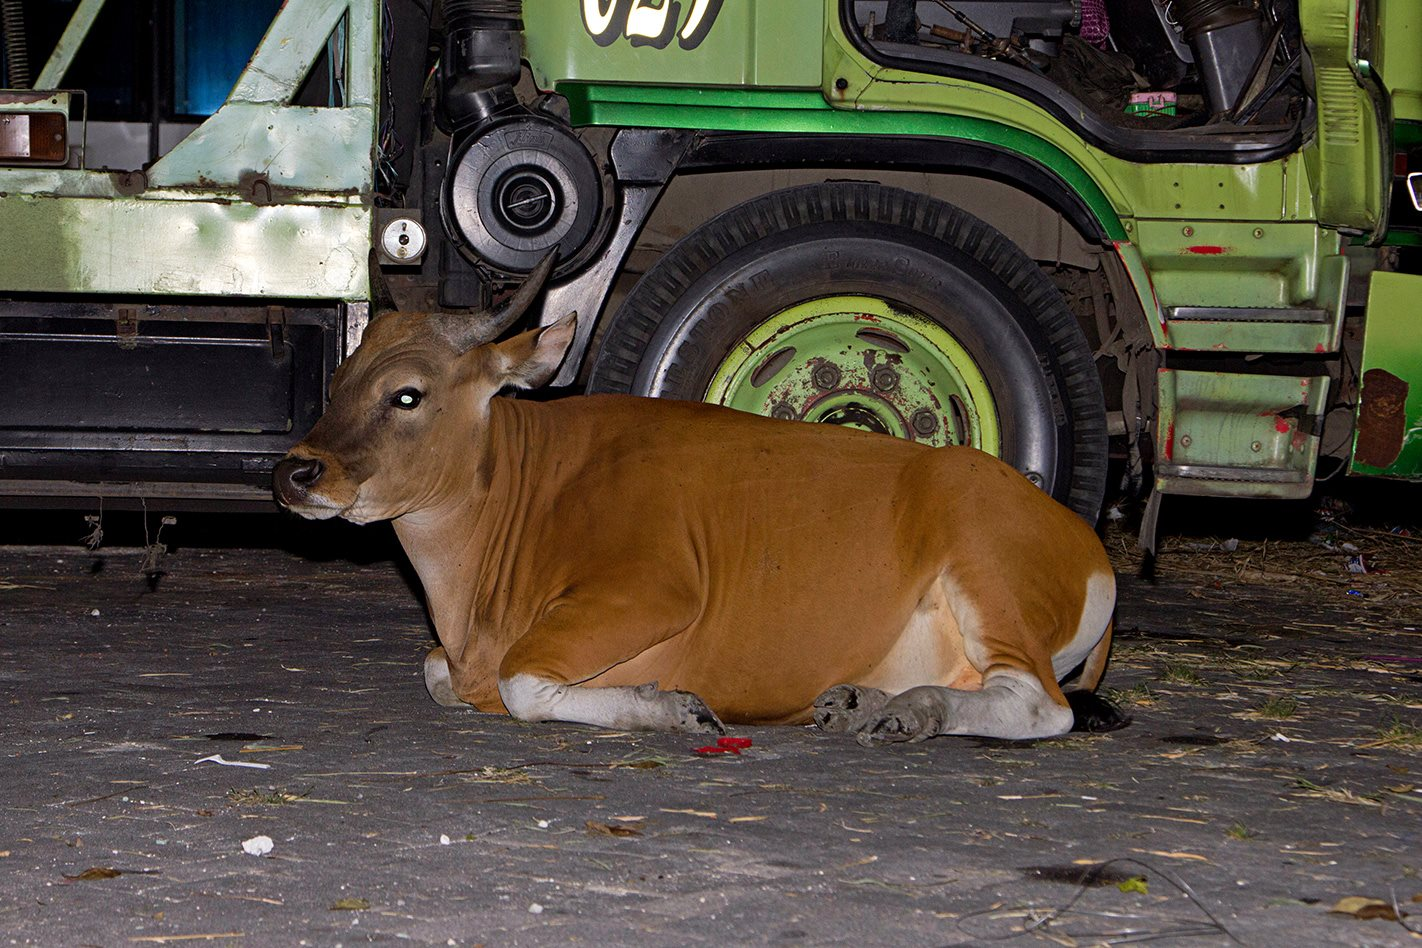 Cow in streets of Kuta